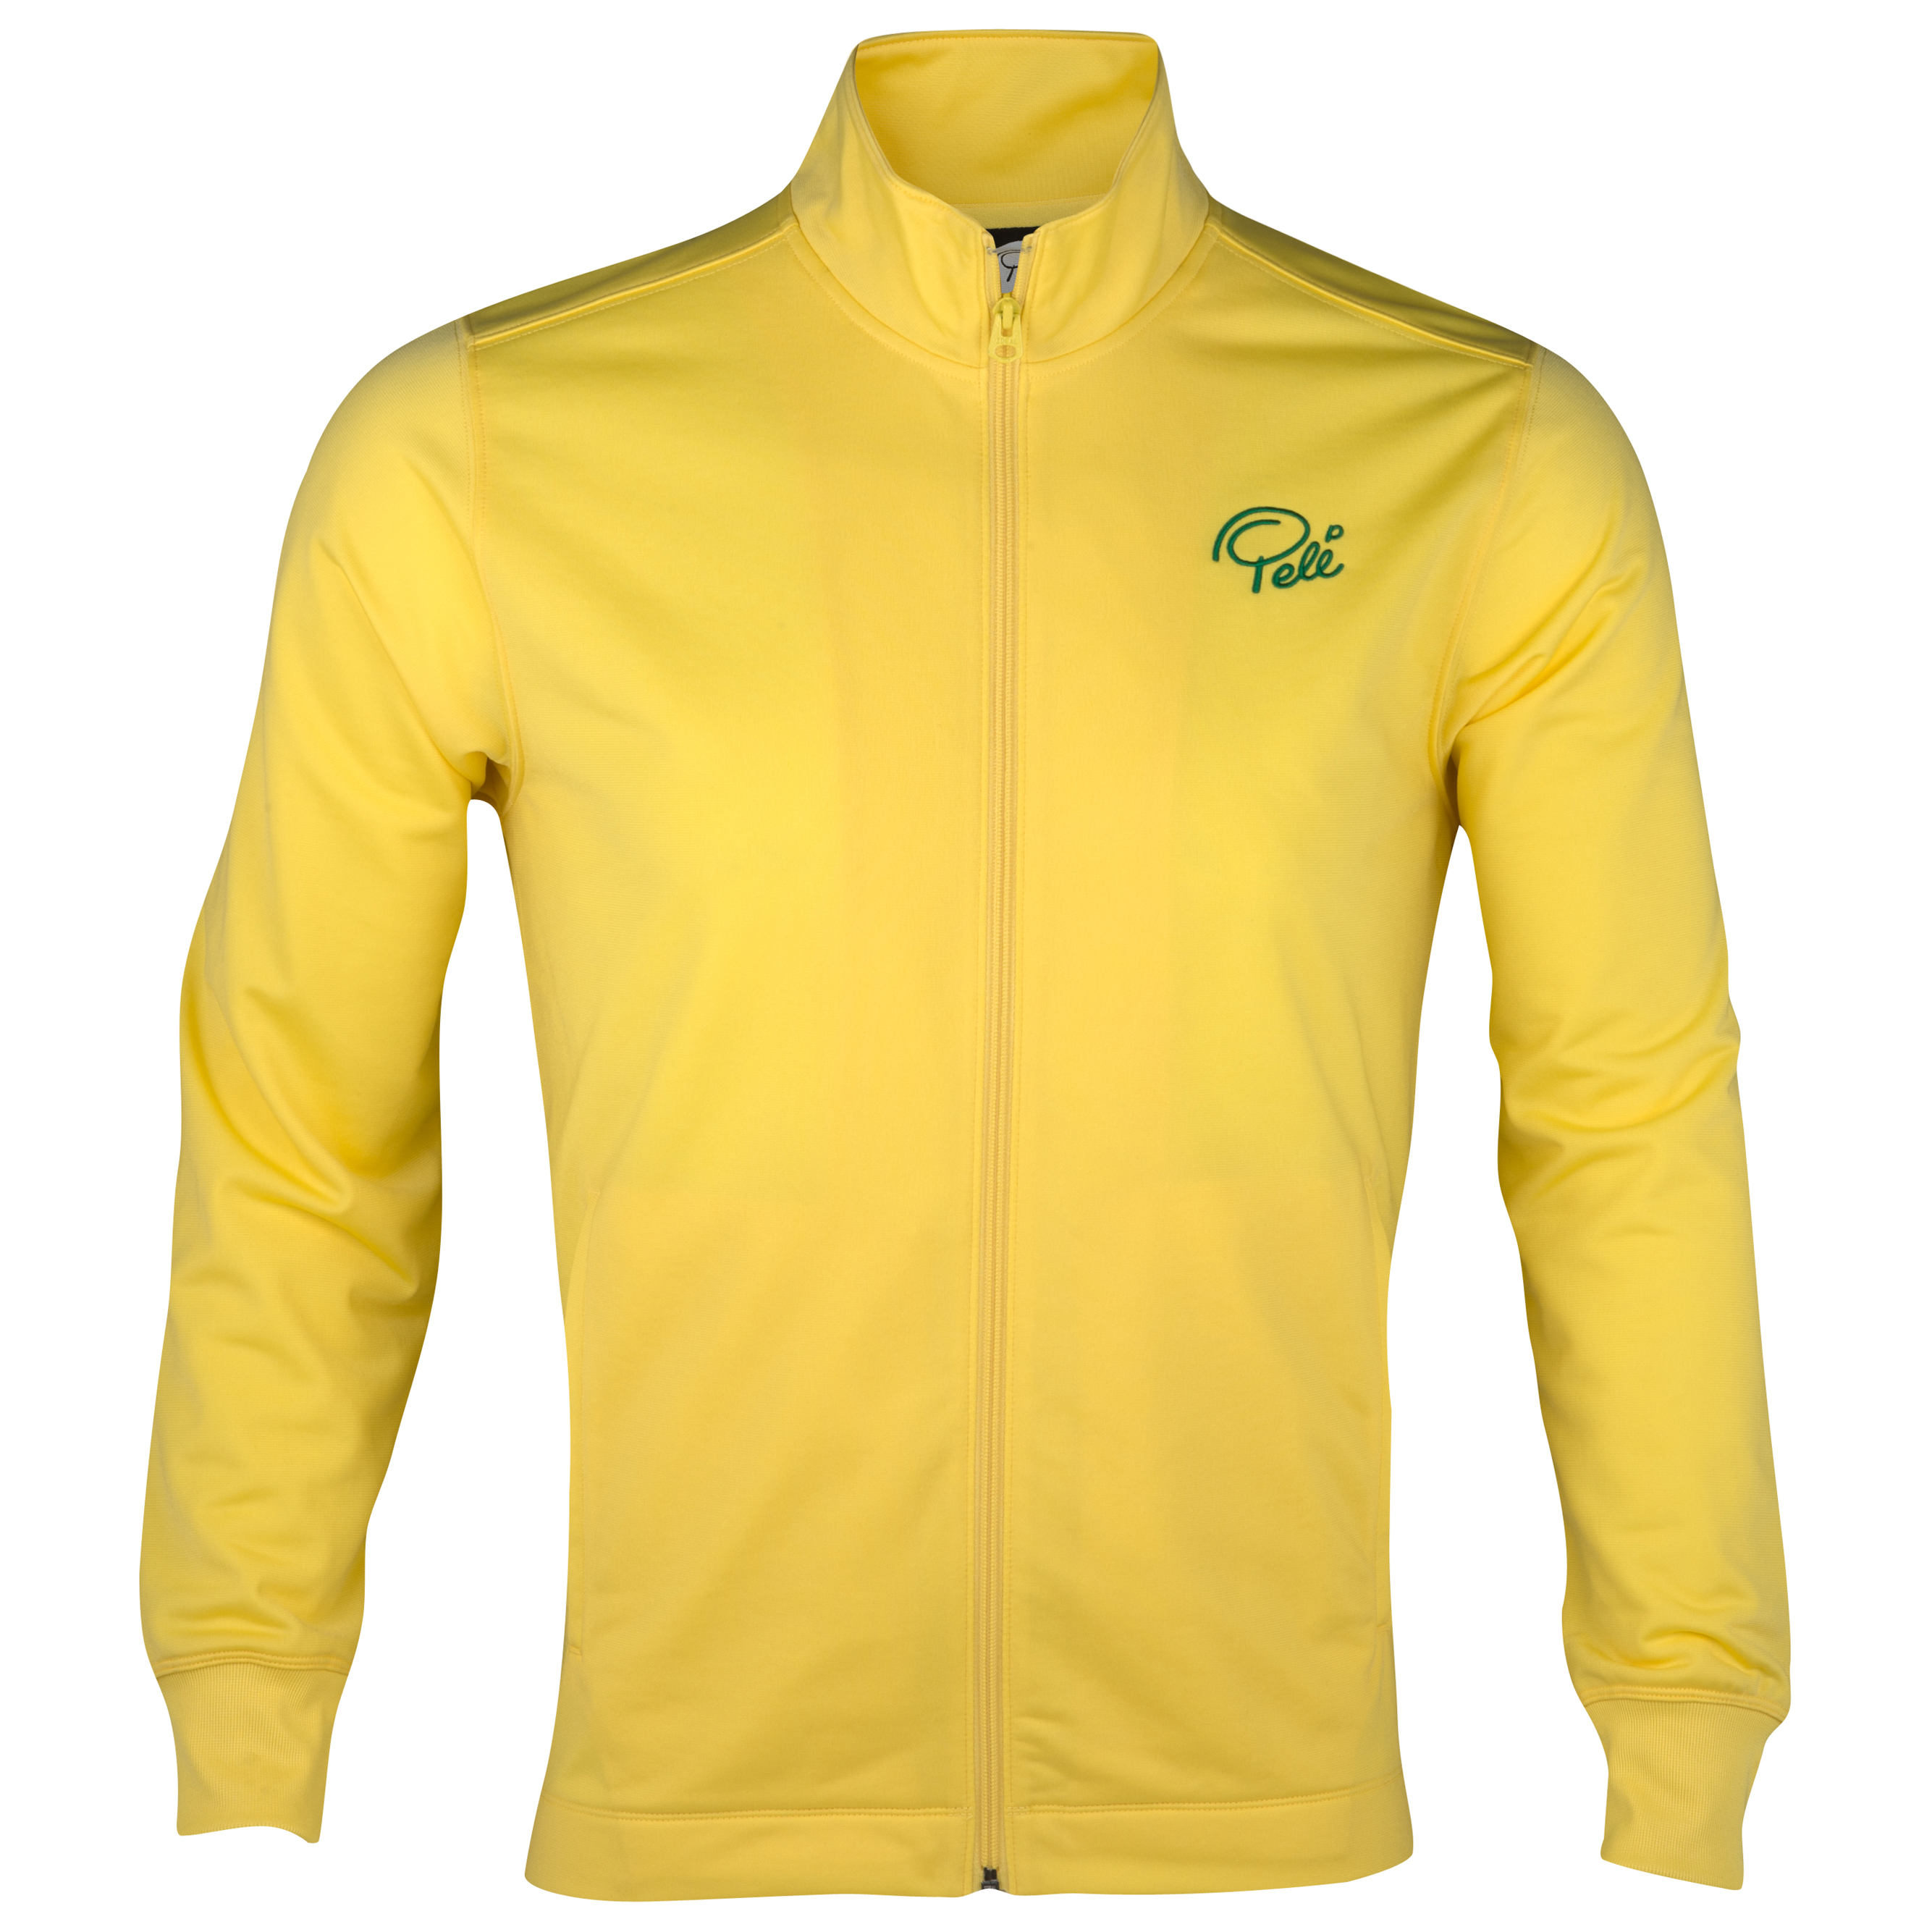 Pele Sports Core Track Jacket - Aspen Gold